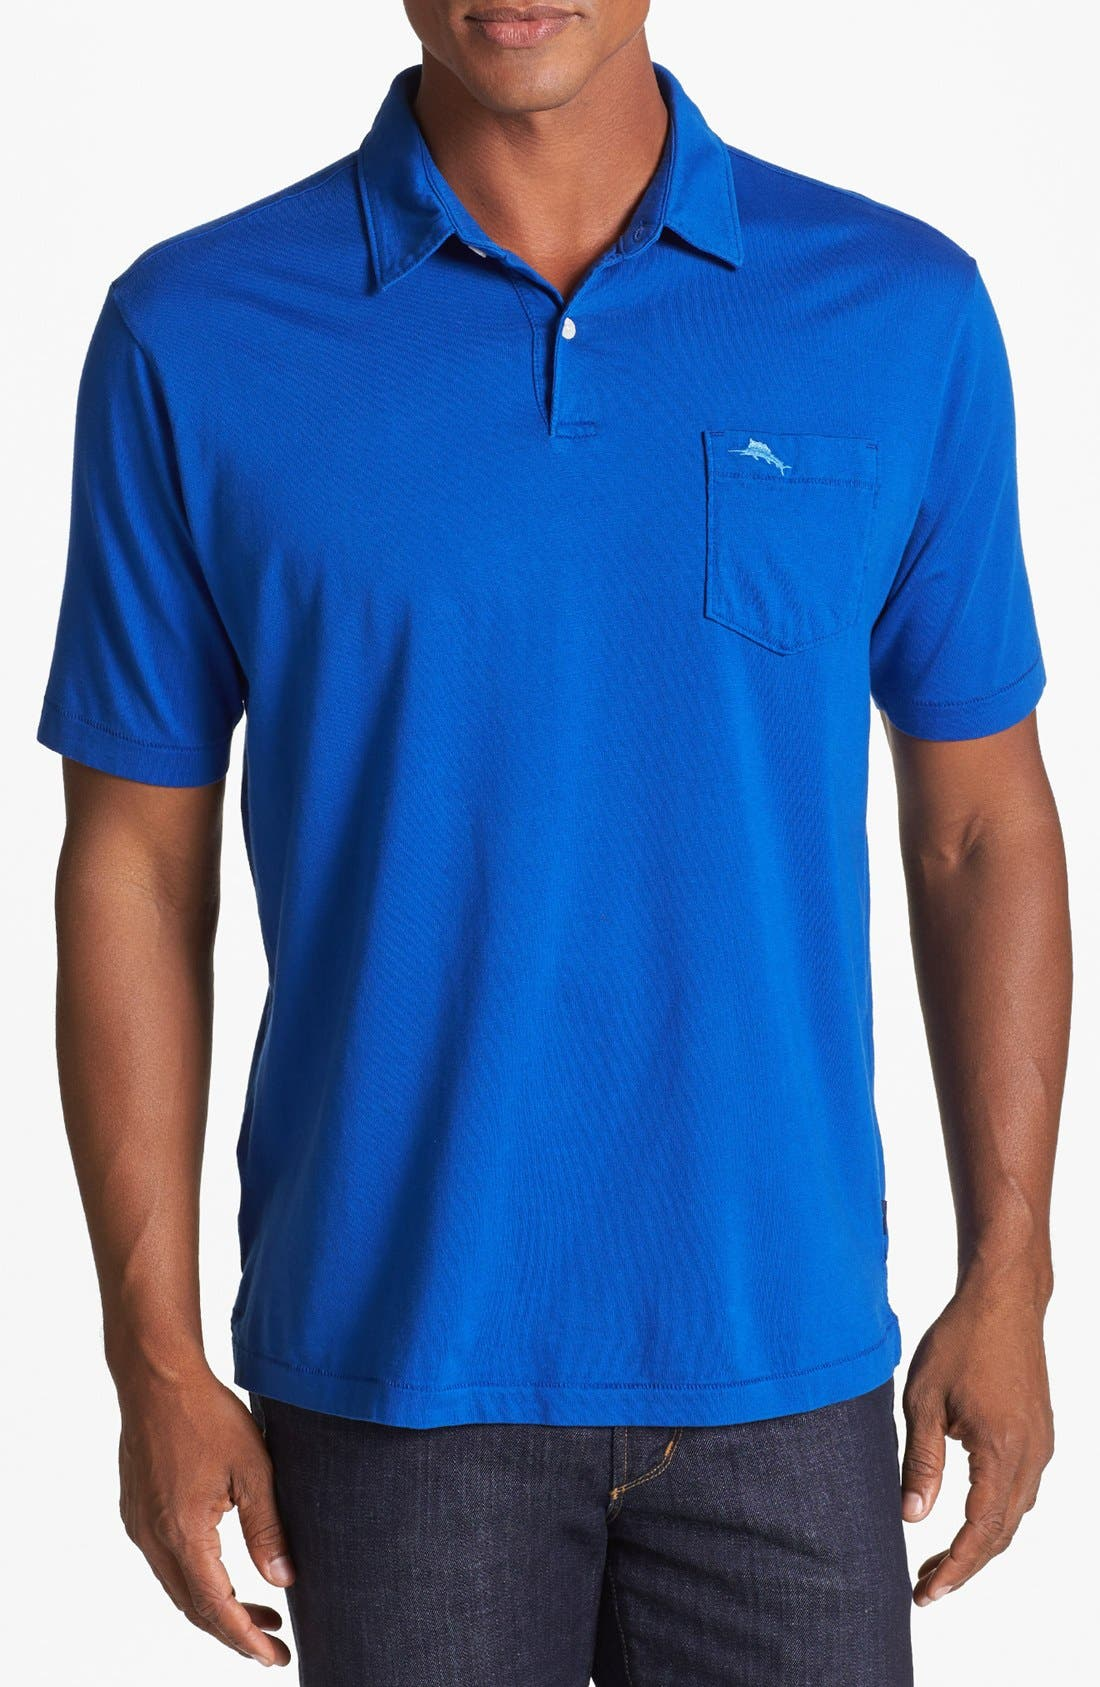 Alternate Image 1 Selected - Tommy Bahama 'Bali High' Polo